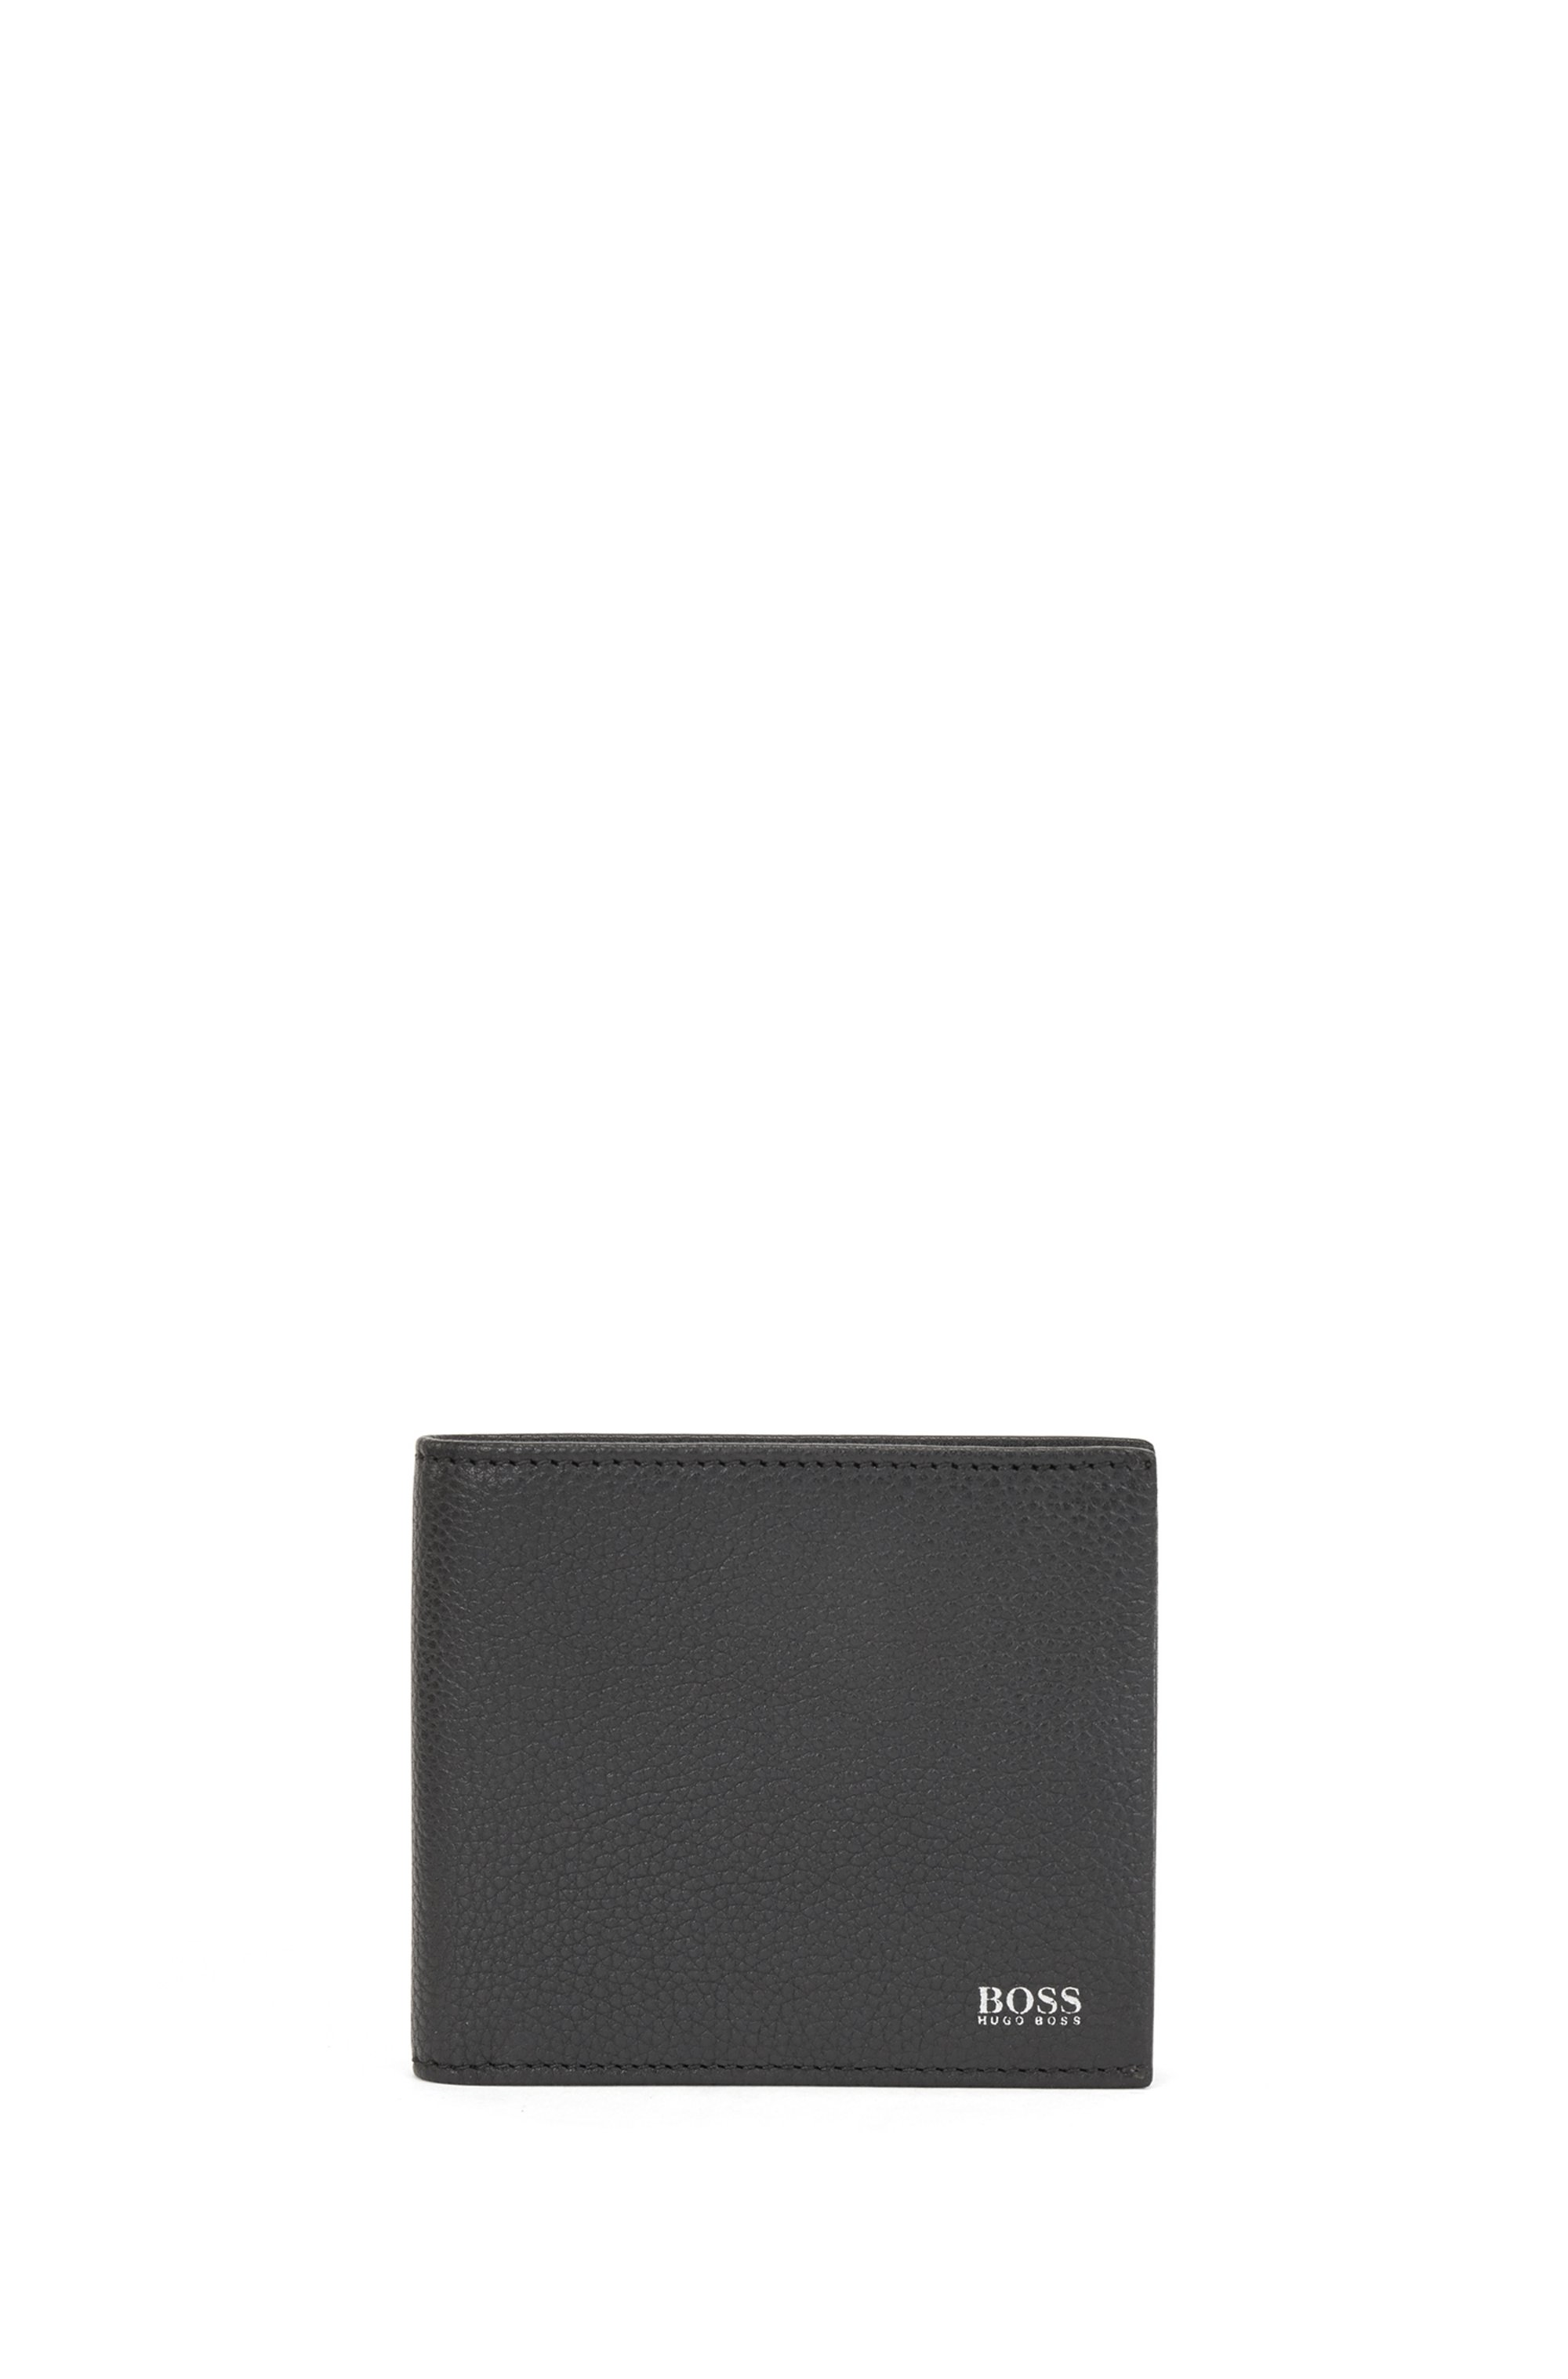 Grained leather wallet and card holder gift set